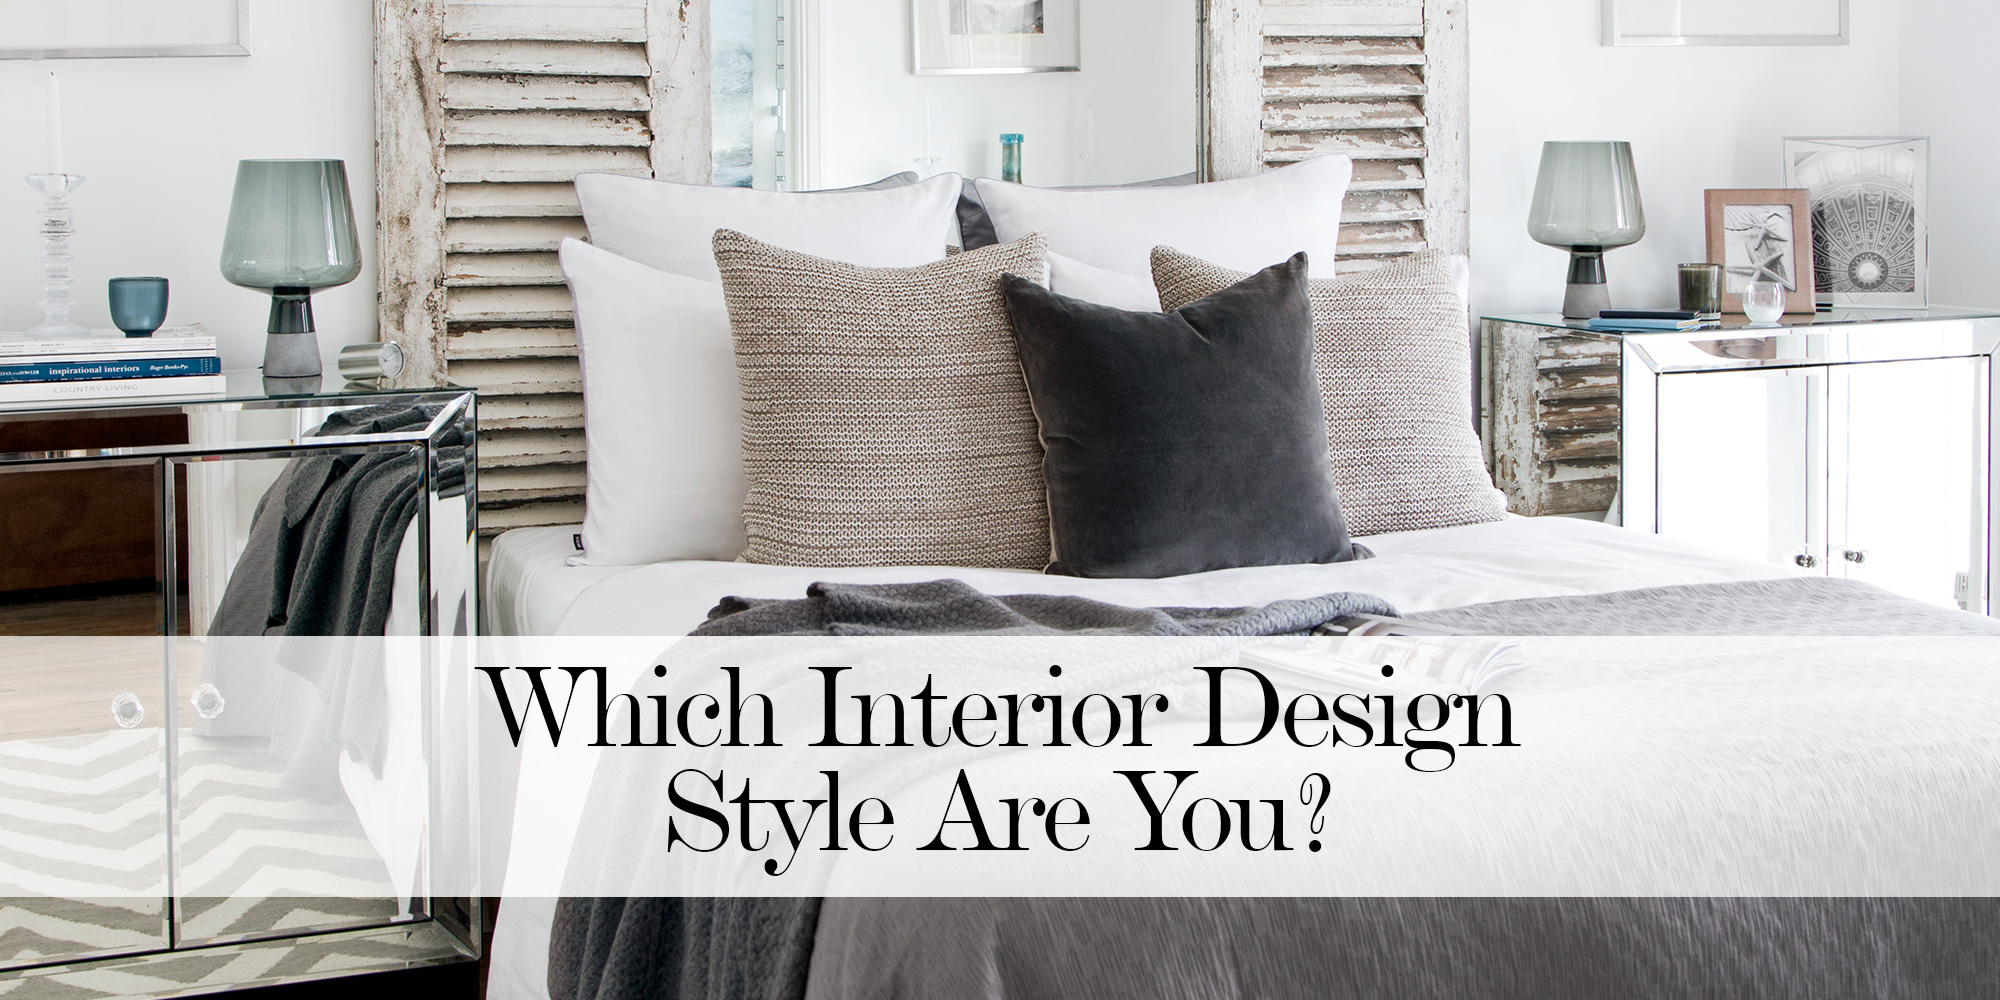 Which Interior Design Style Are You? - The LuxPad - The Latest Luxury ...